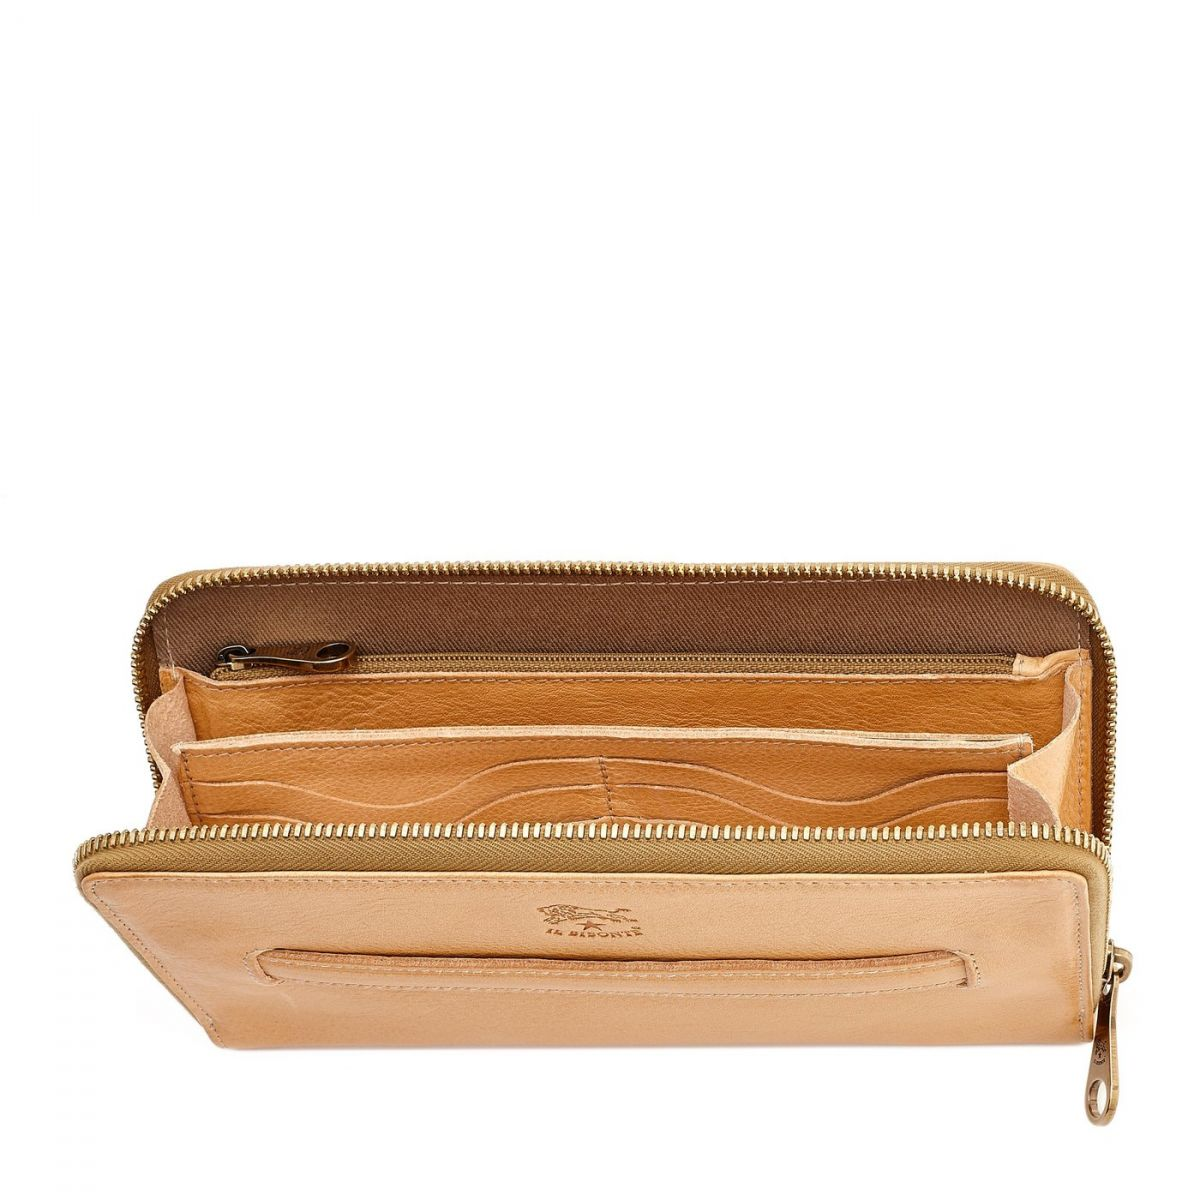 Women's Zip Around Wallet in Cowhide Leather color Natural - SZW028 | Details